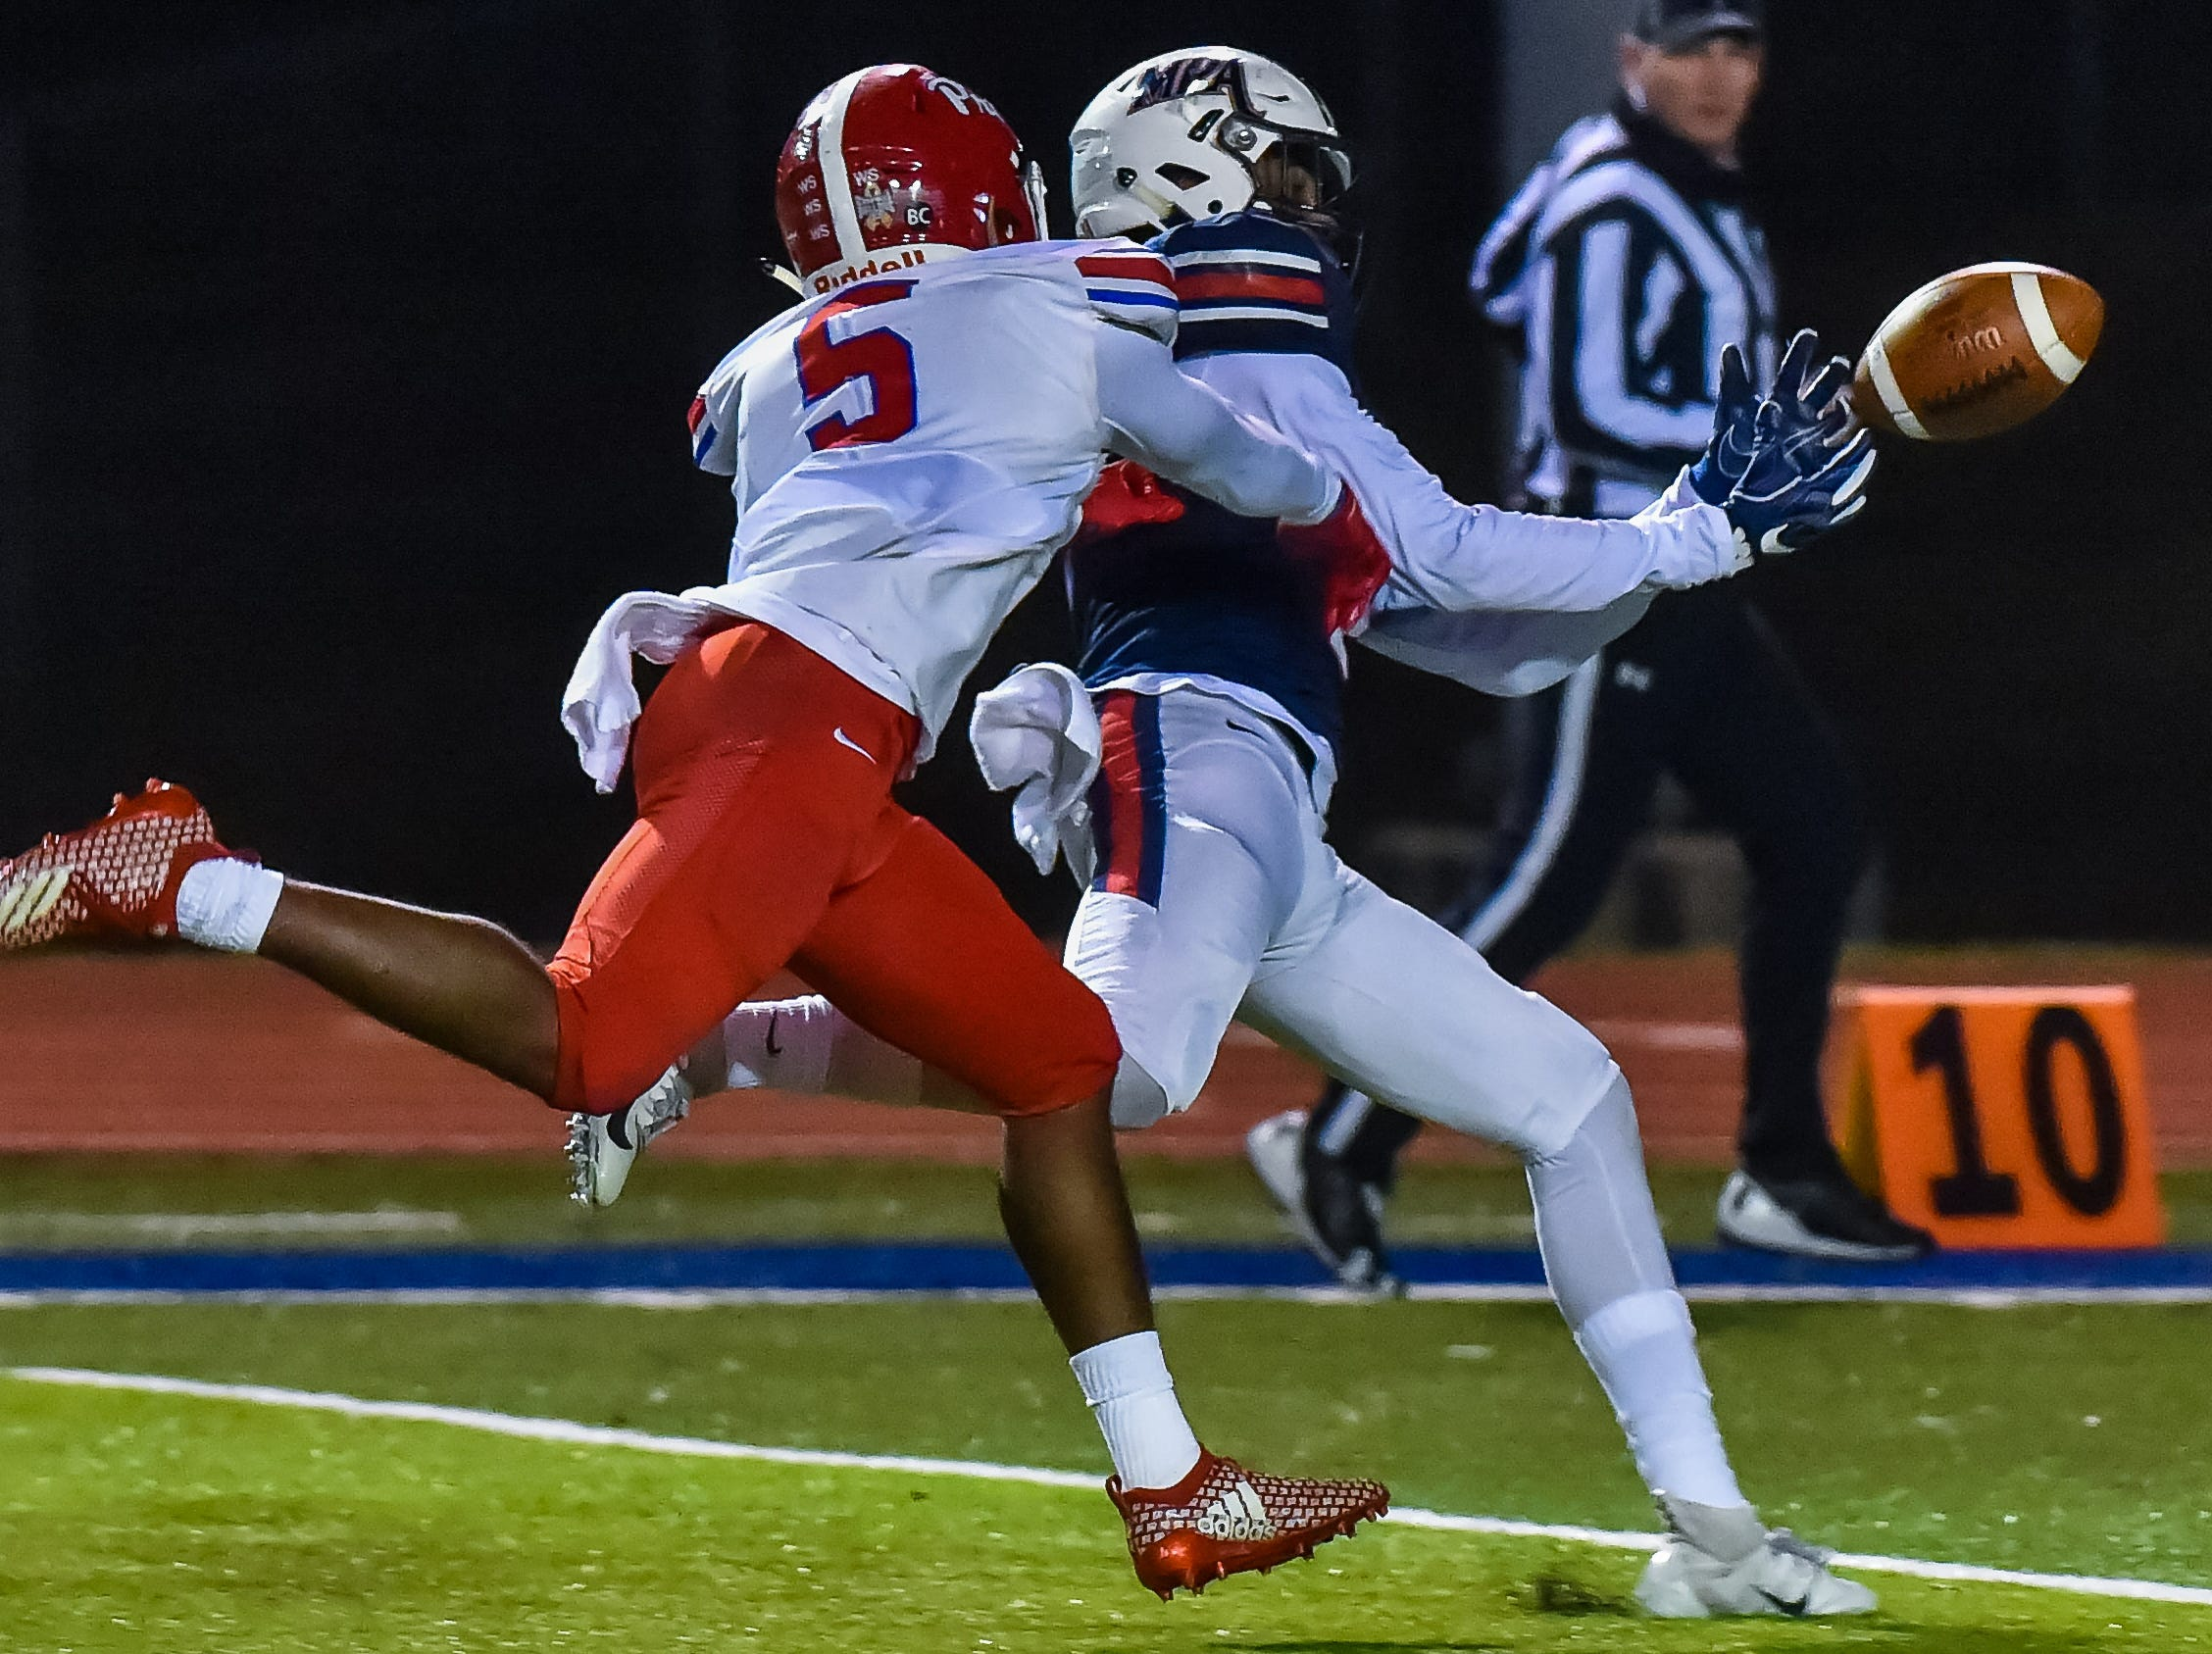 Madison Ridgeland Academy receiver Joseph Perkins can't quite haul in this pass against Jackson Prep's Matt Jones (5) during the MAIS Class AAAA Championship Football game held at Jackson Academy in Jackson, MS, Thursday November 16, 2018.(Bob Smith-For The Clarion Ledger)